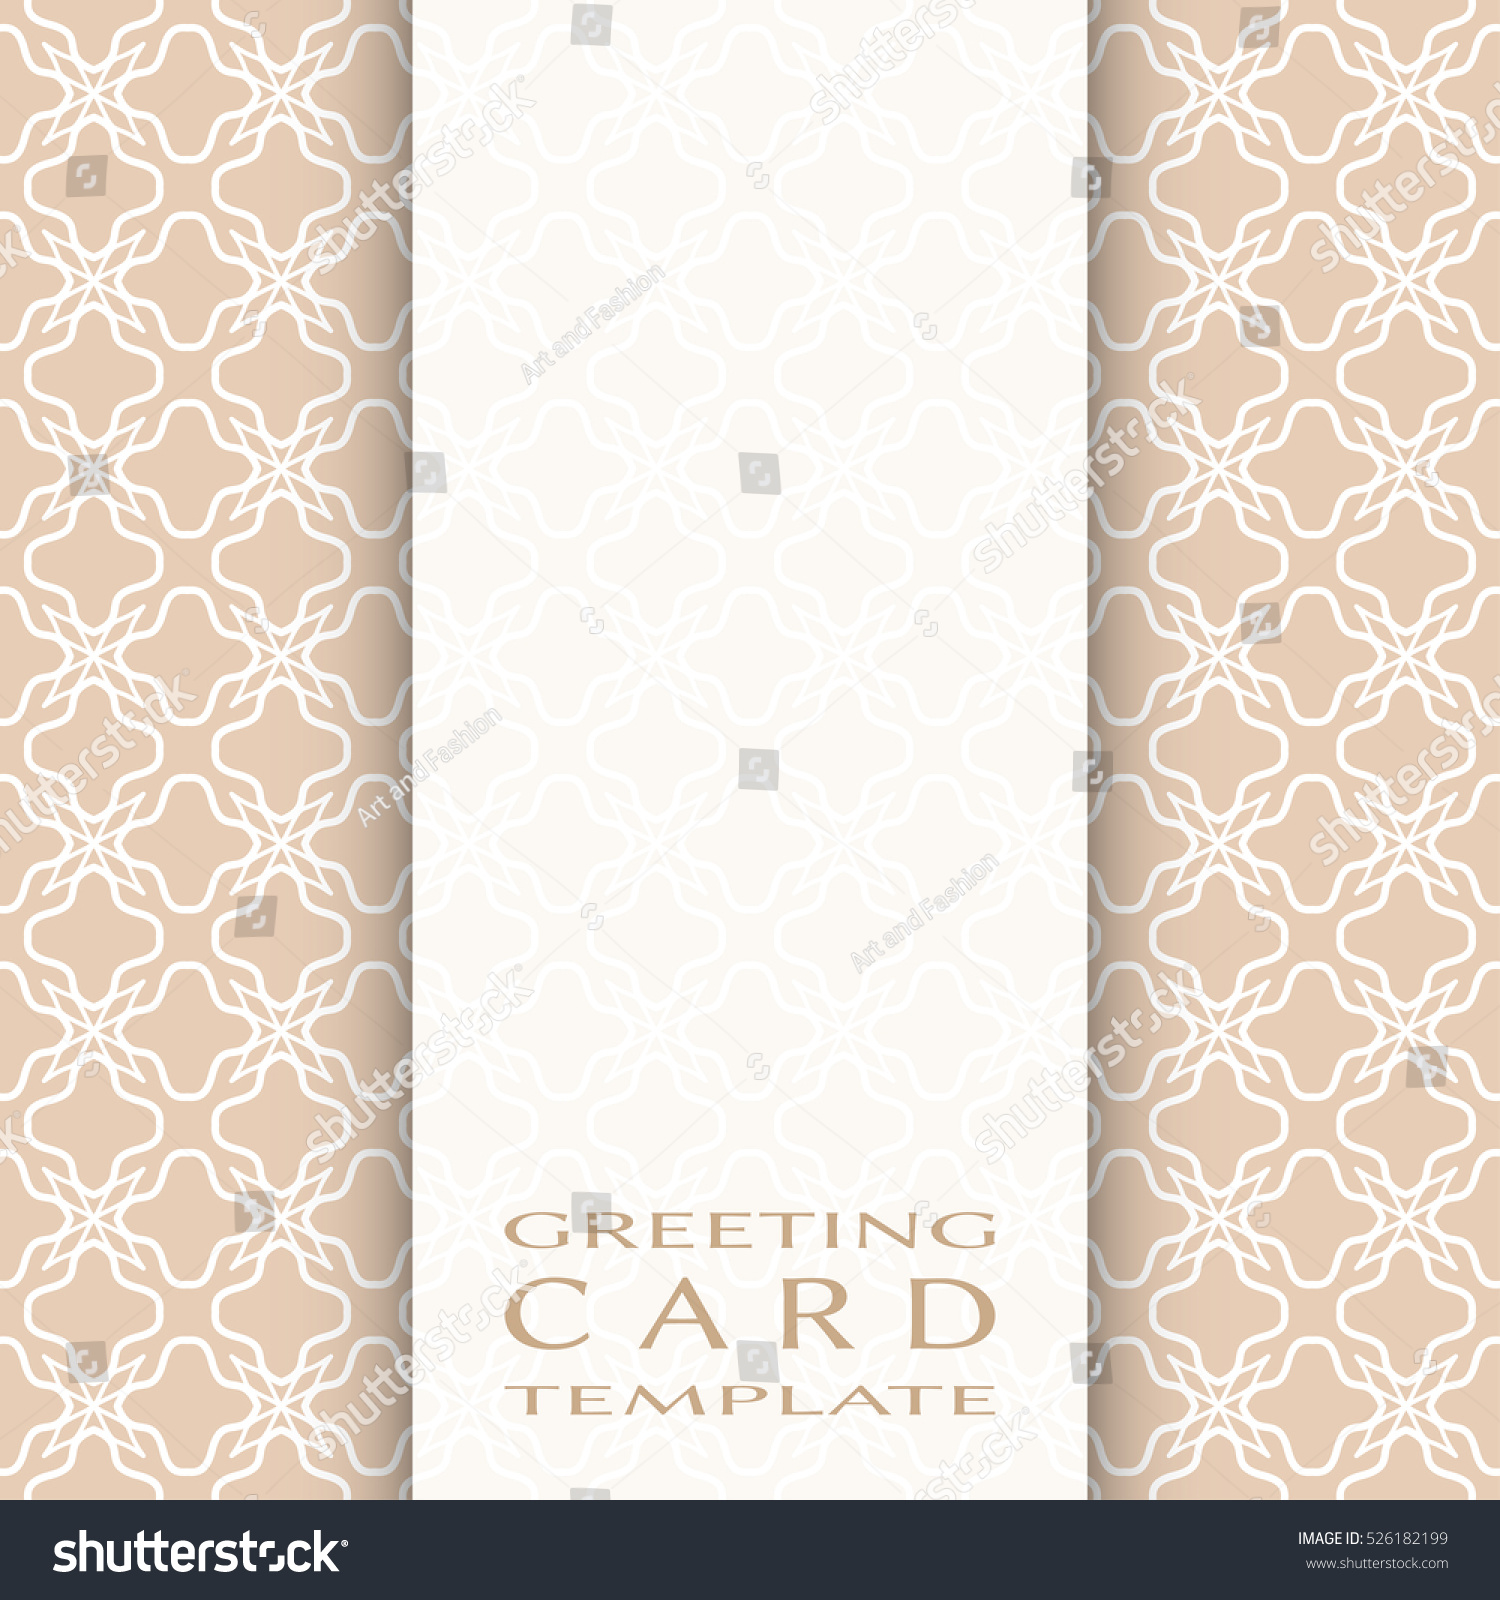 Invitation card template lace pattern decorative stock for Queue cards template